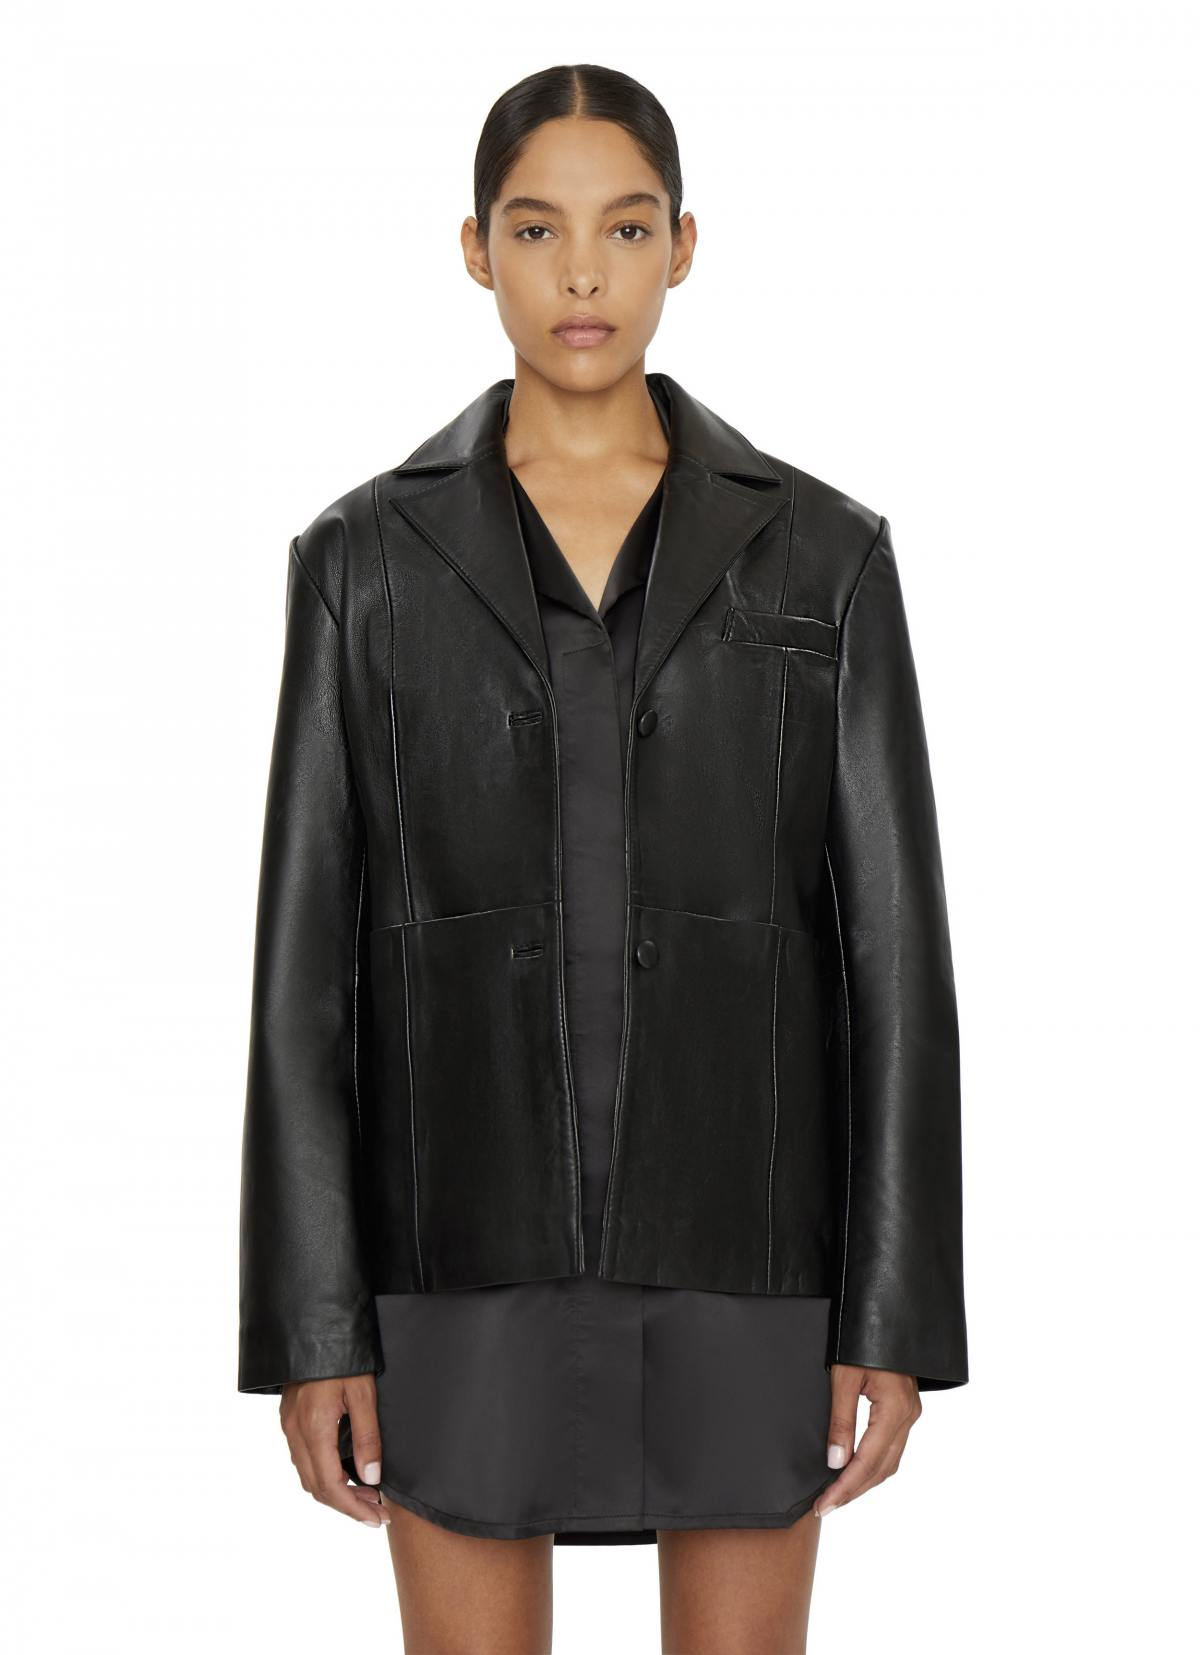 Classic Leather Blazer by Danielle Guizio, available on danielleguiziony.com for $485 Kendall Jenner Outerwear Exact Product